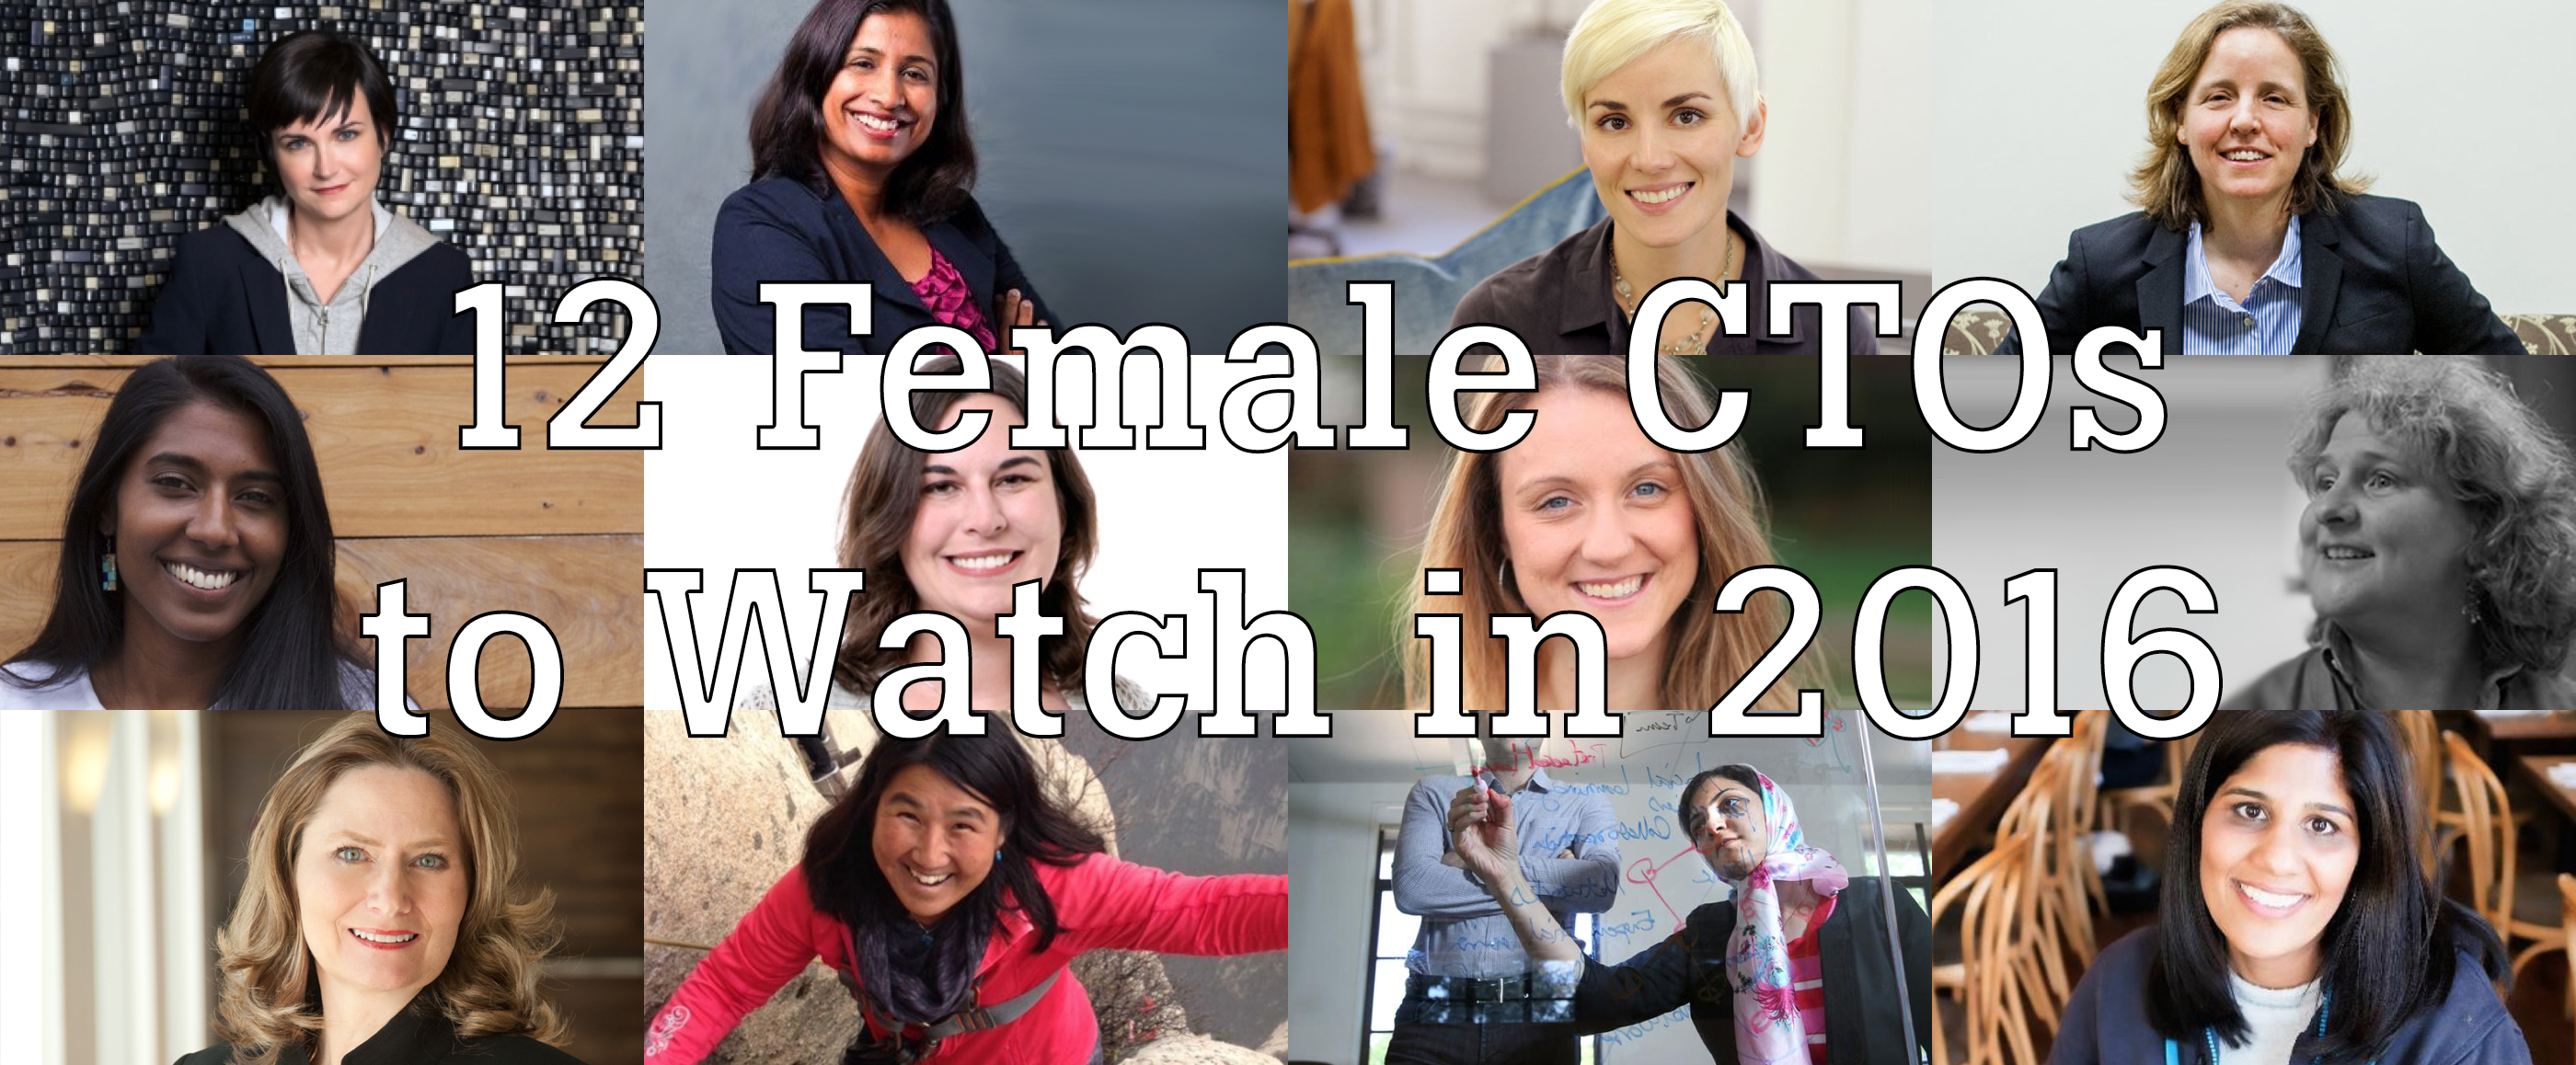 12-female-CTOs-to-watch-2016